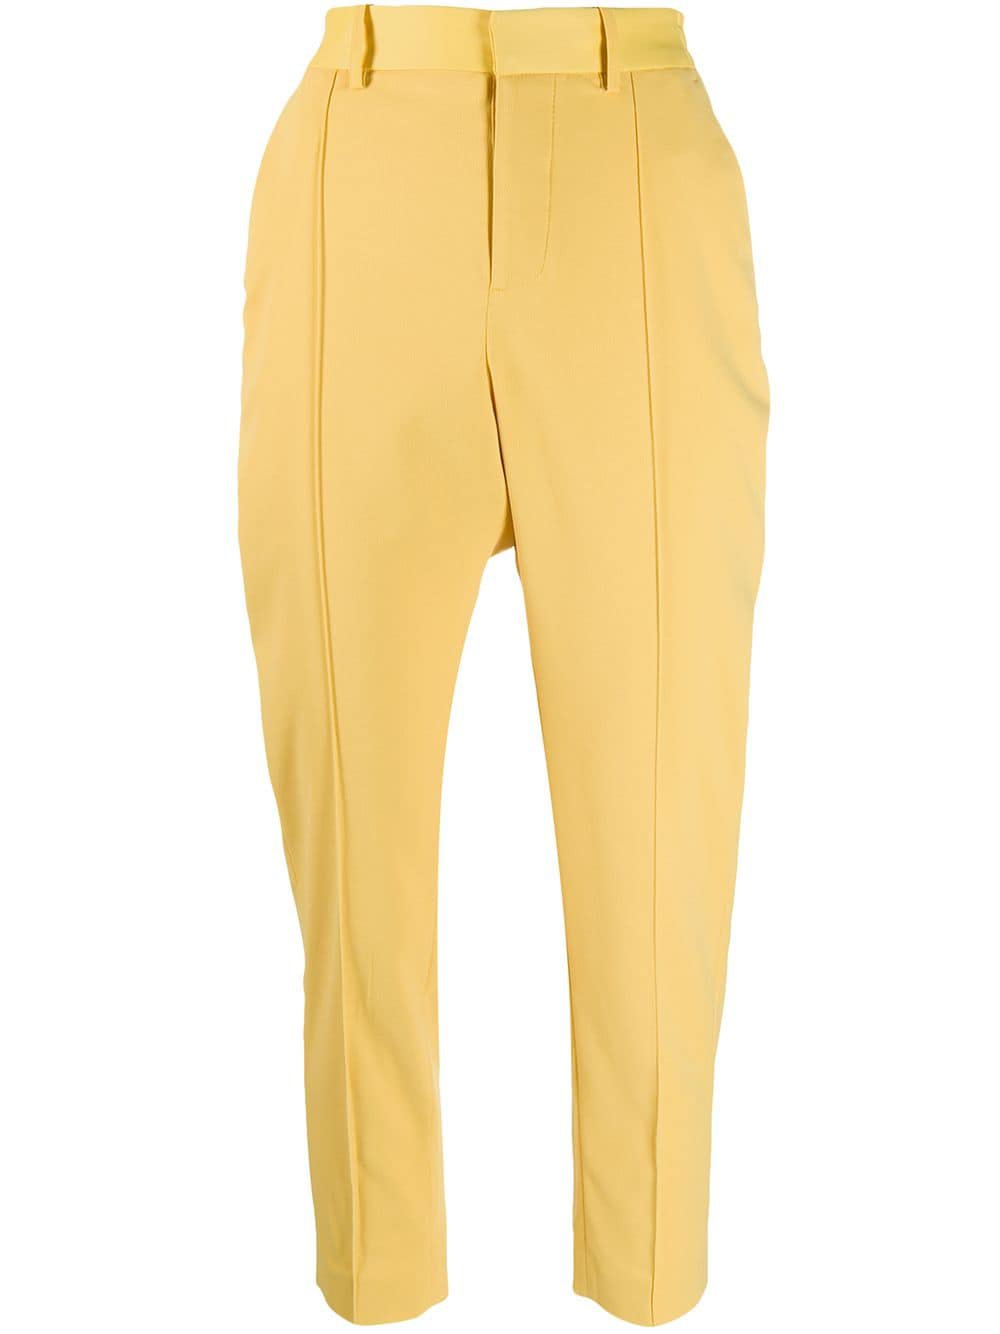 Zadig&Voltaire straight leg trousers £220 - Fast Global Shipping, Free Returns